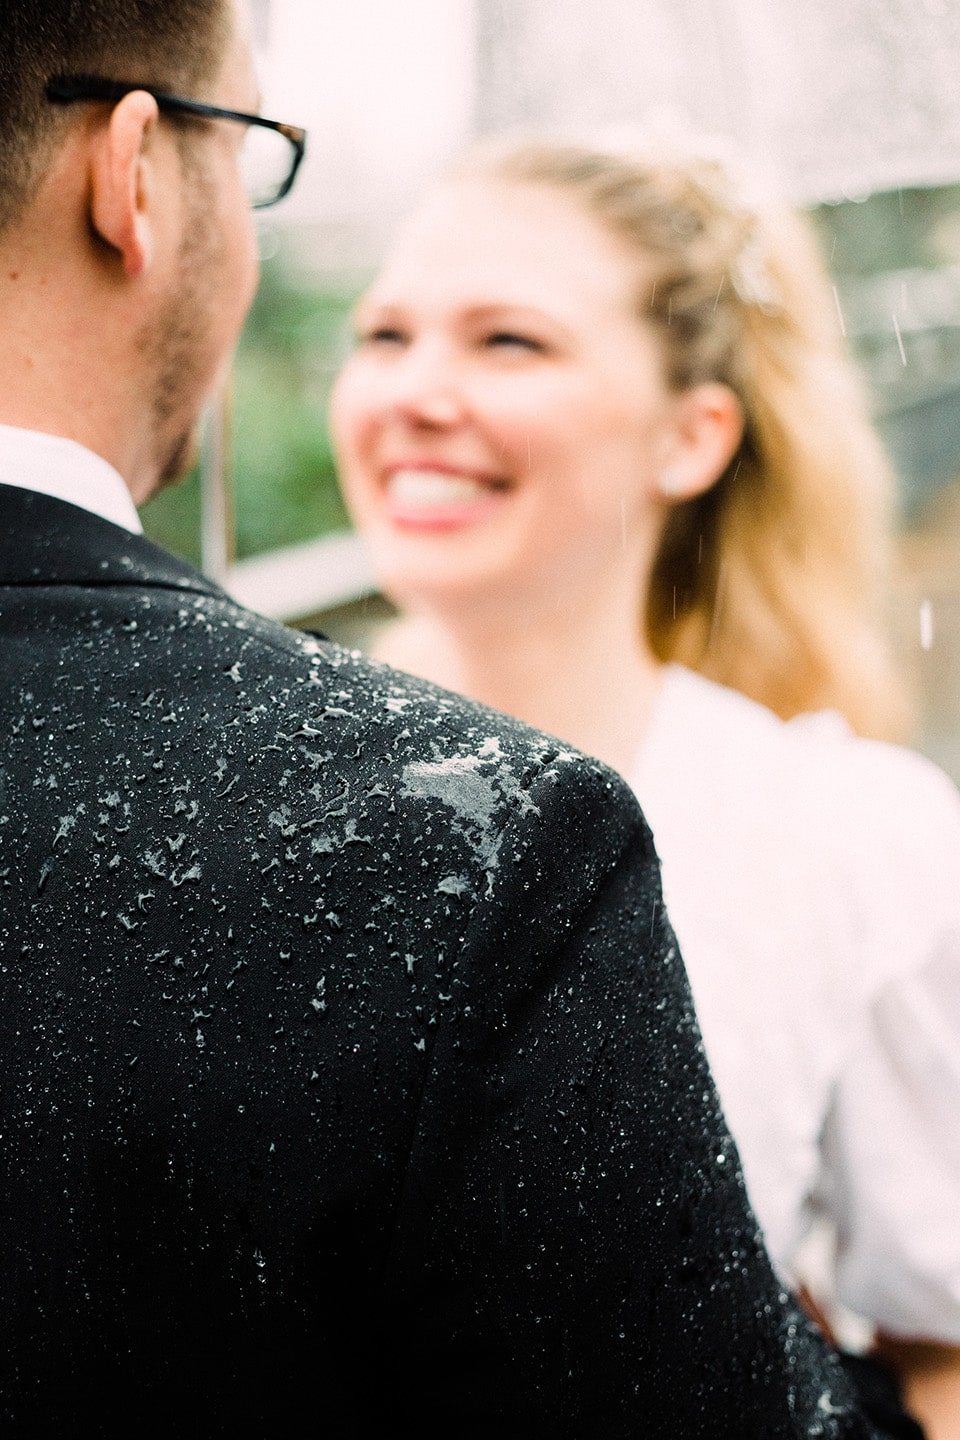 Bride smiles at groom while standing under umbrella in the rain